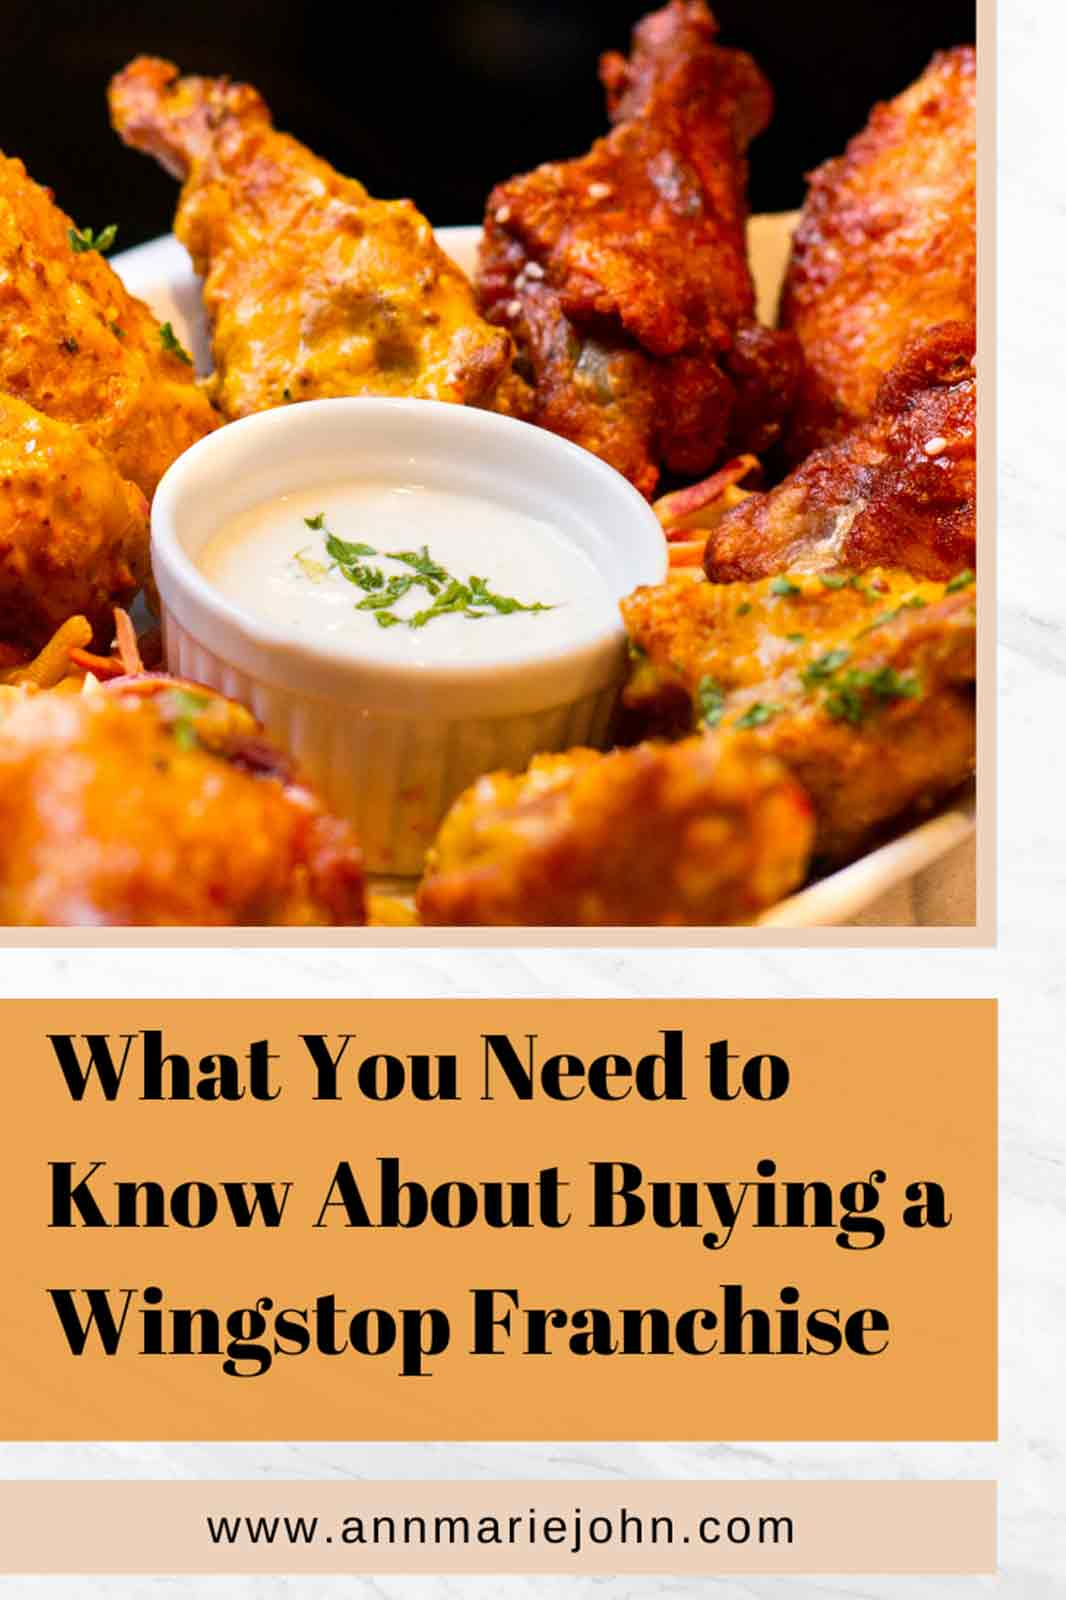 What You Need to Know About Buying a Wingstop Franchise